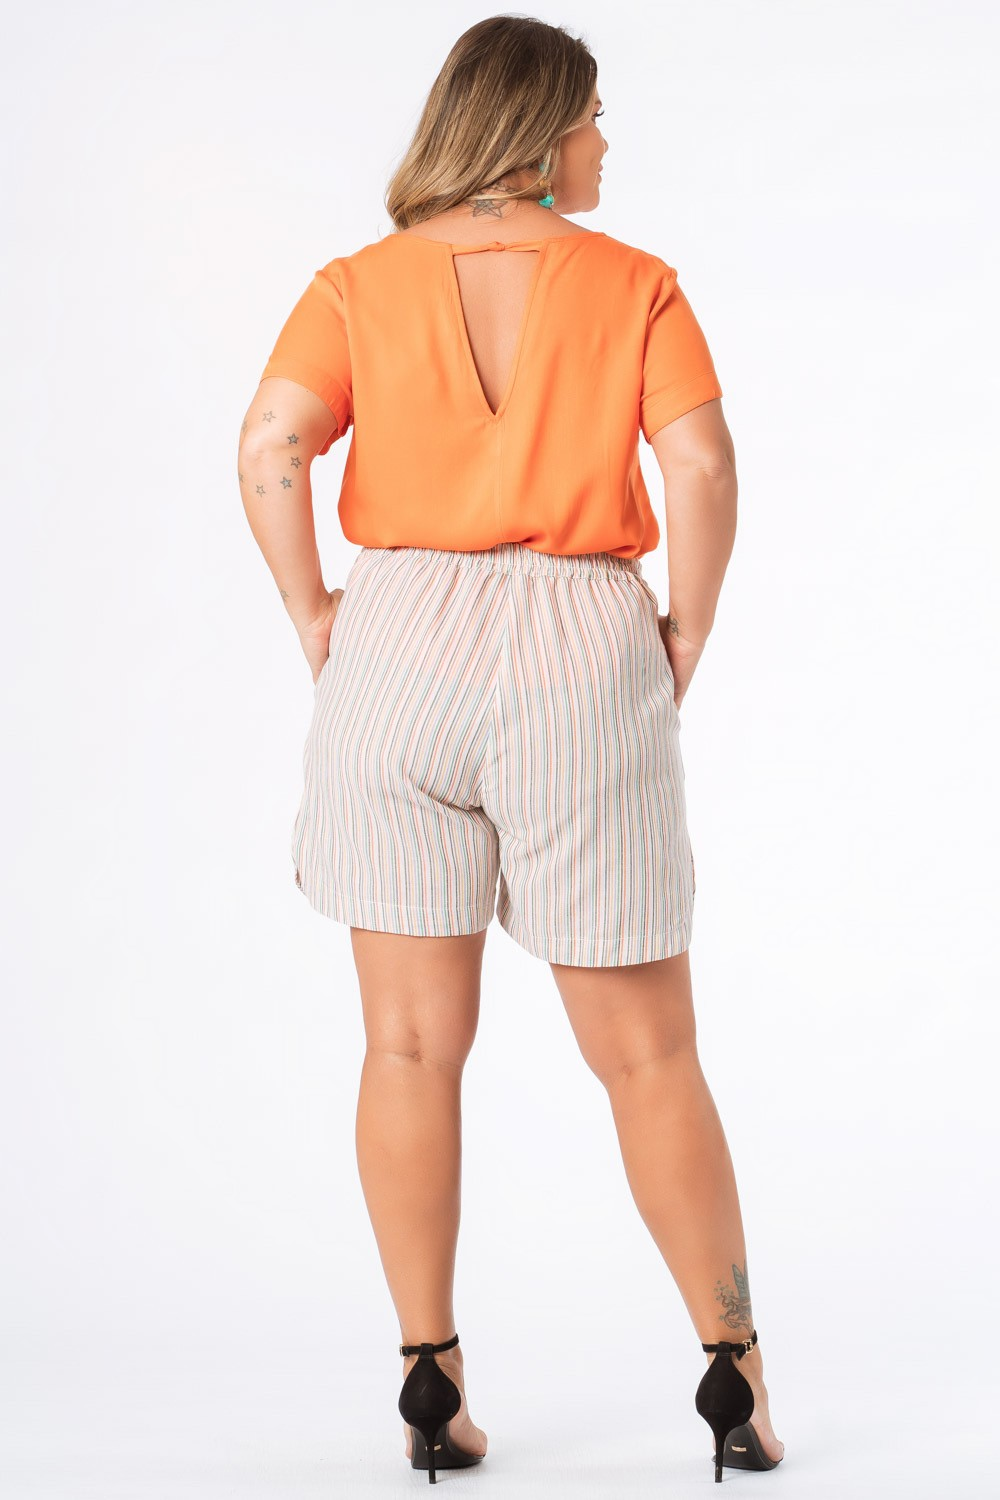 SHORTS LISTRADO PLUS SIZE